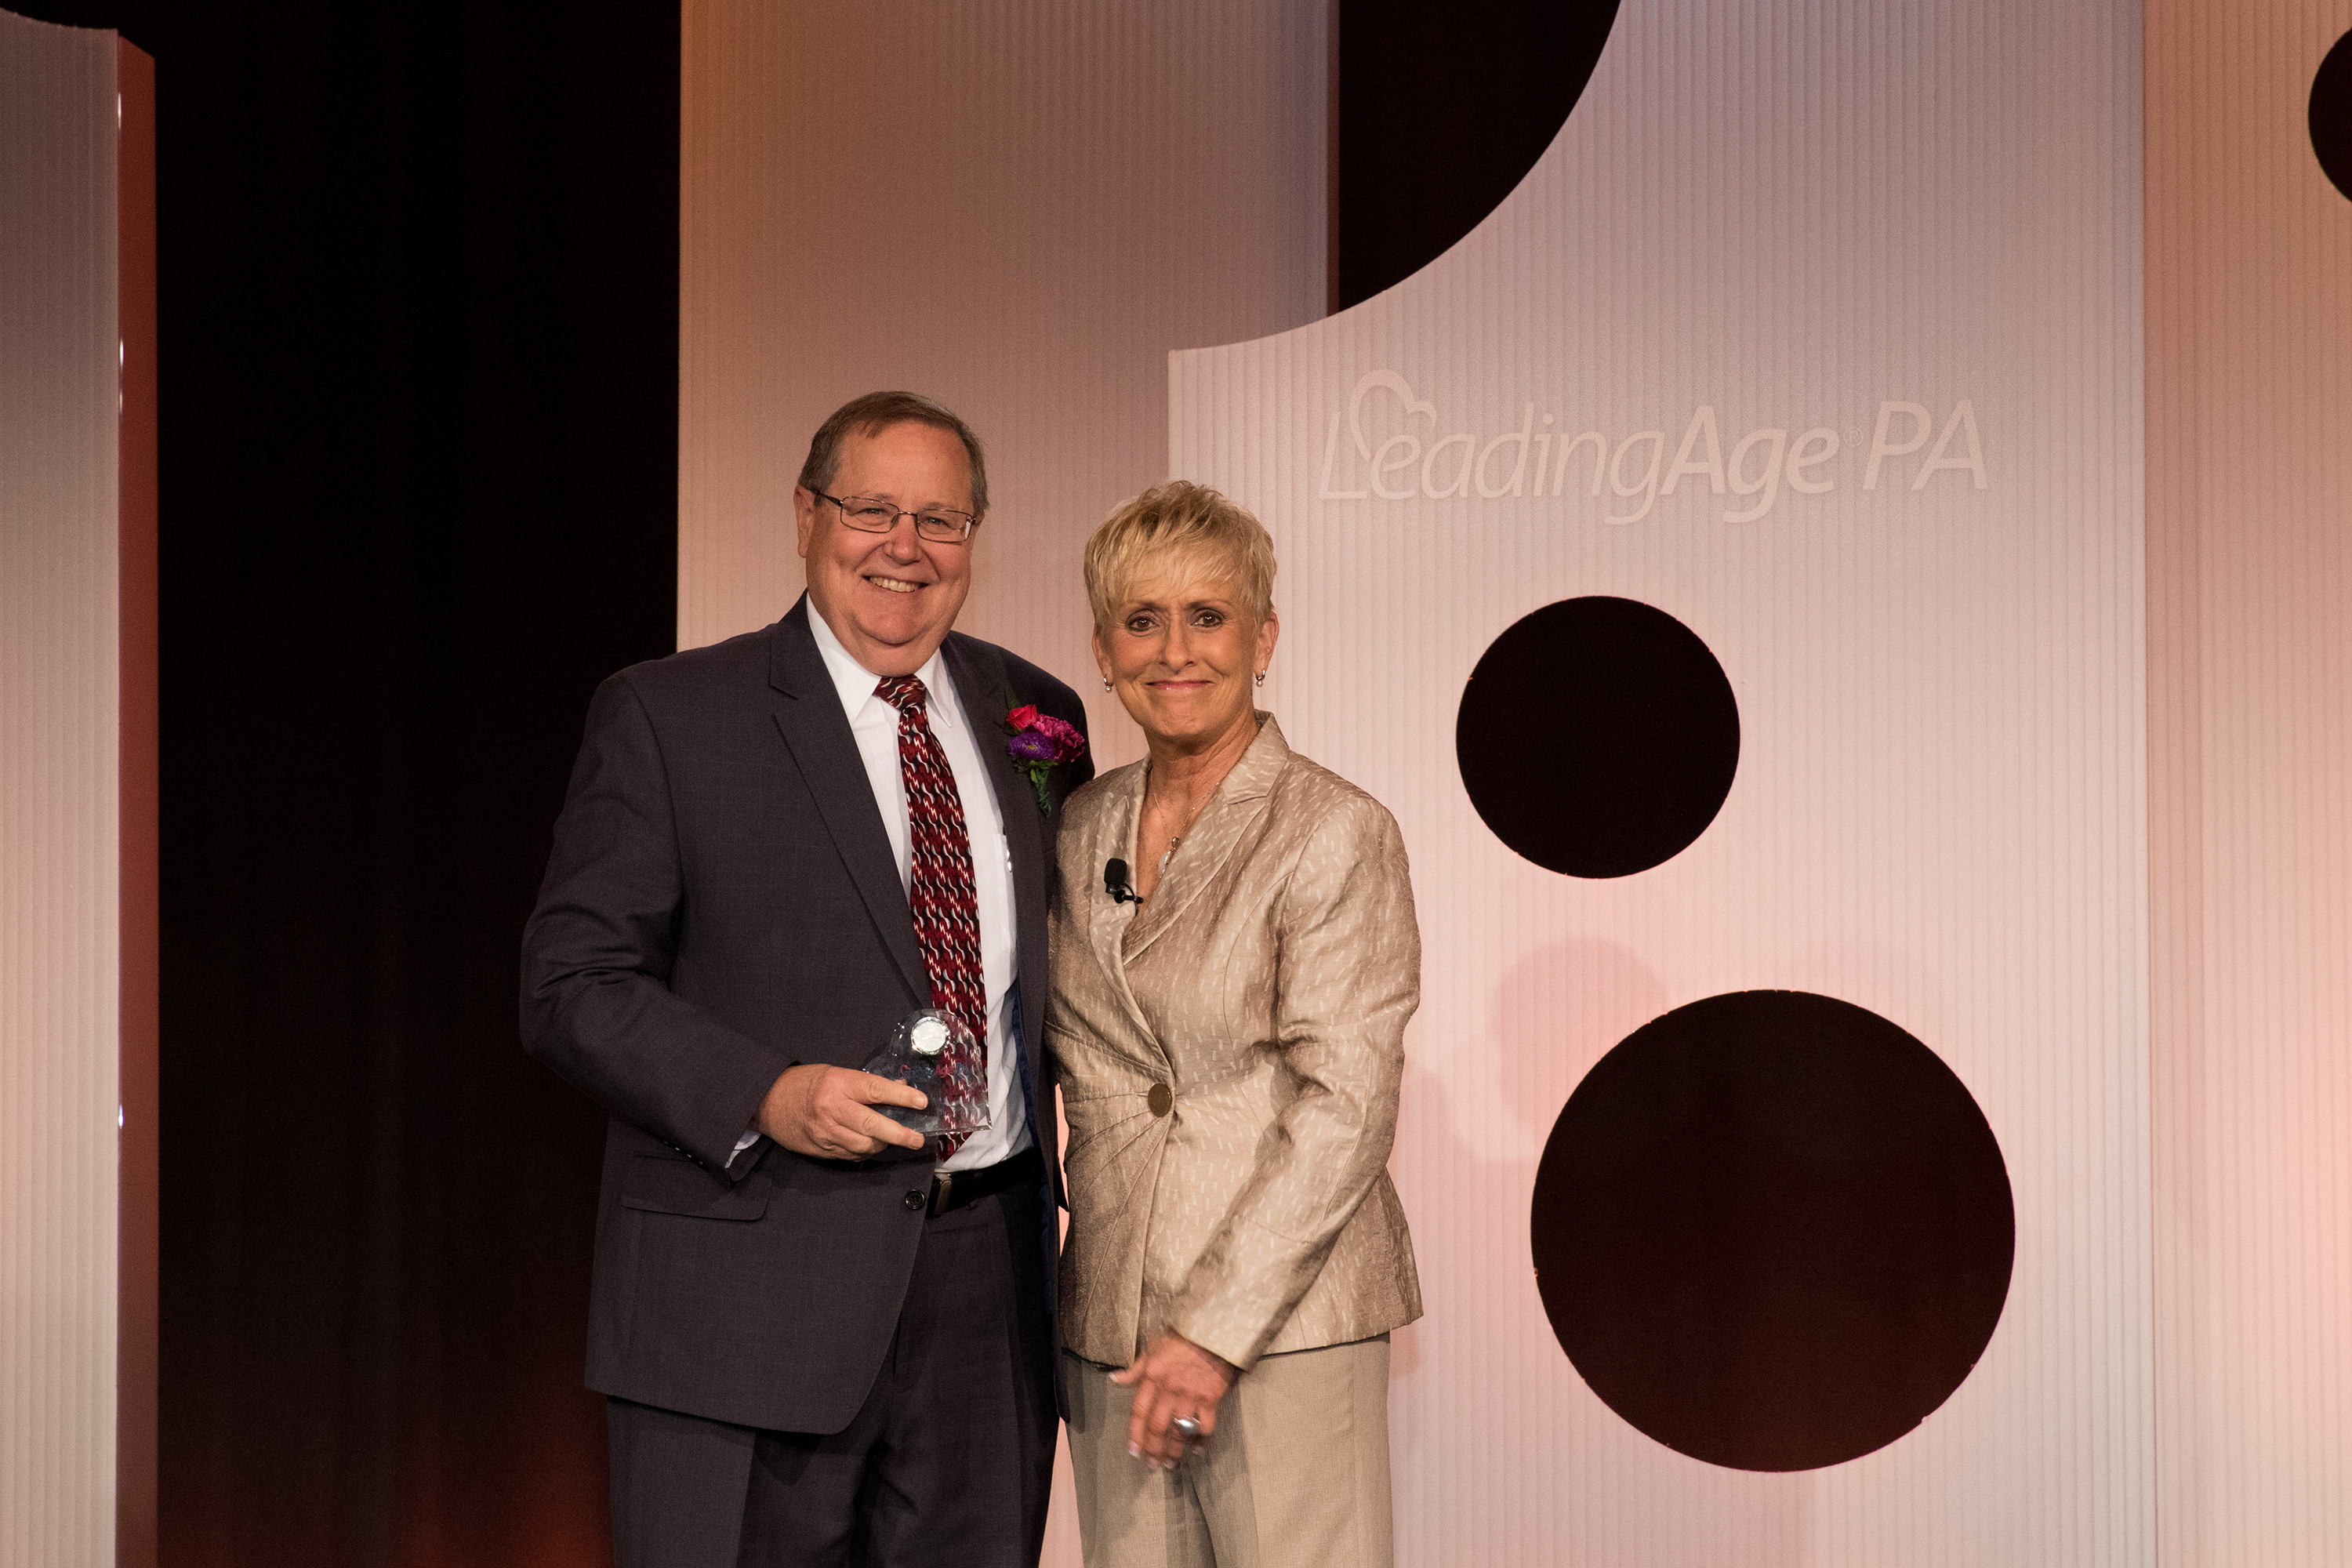 Gary Gardner, VP of Special Projects, Receives an Award from LeadingAge PA